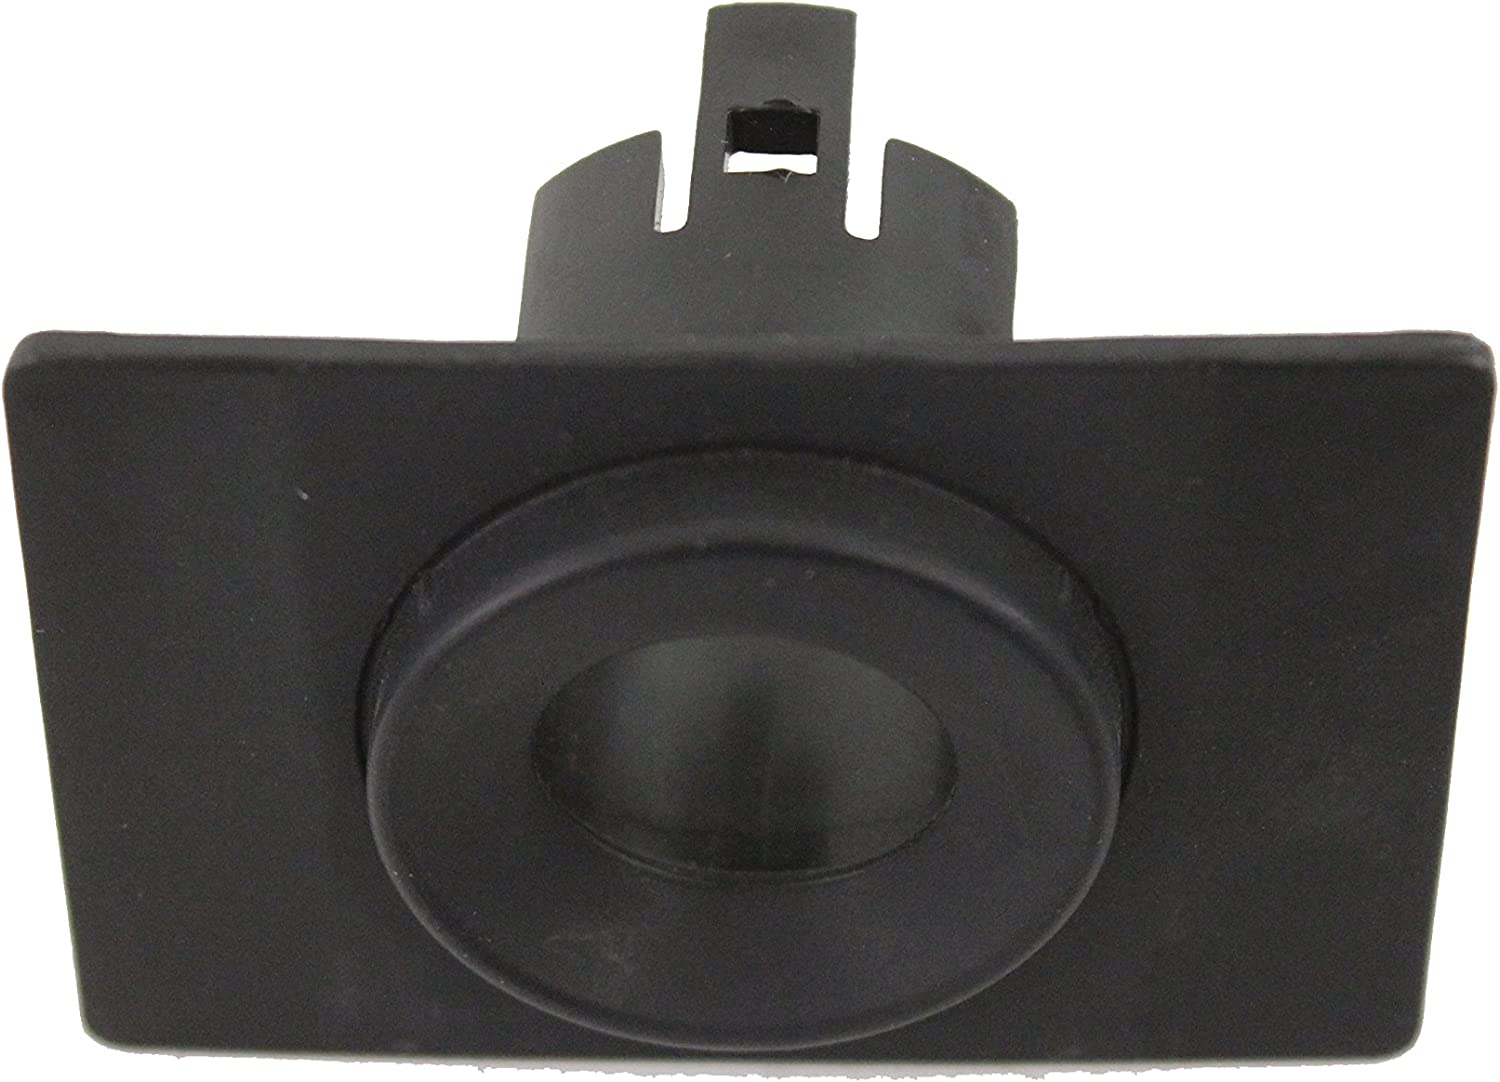 Left GM Genuine 15817526 Parking Sensor Housing Rear